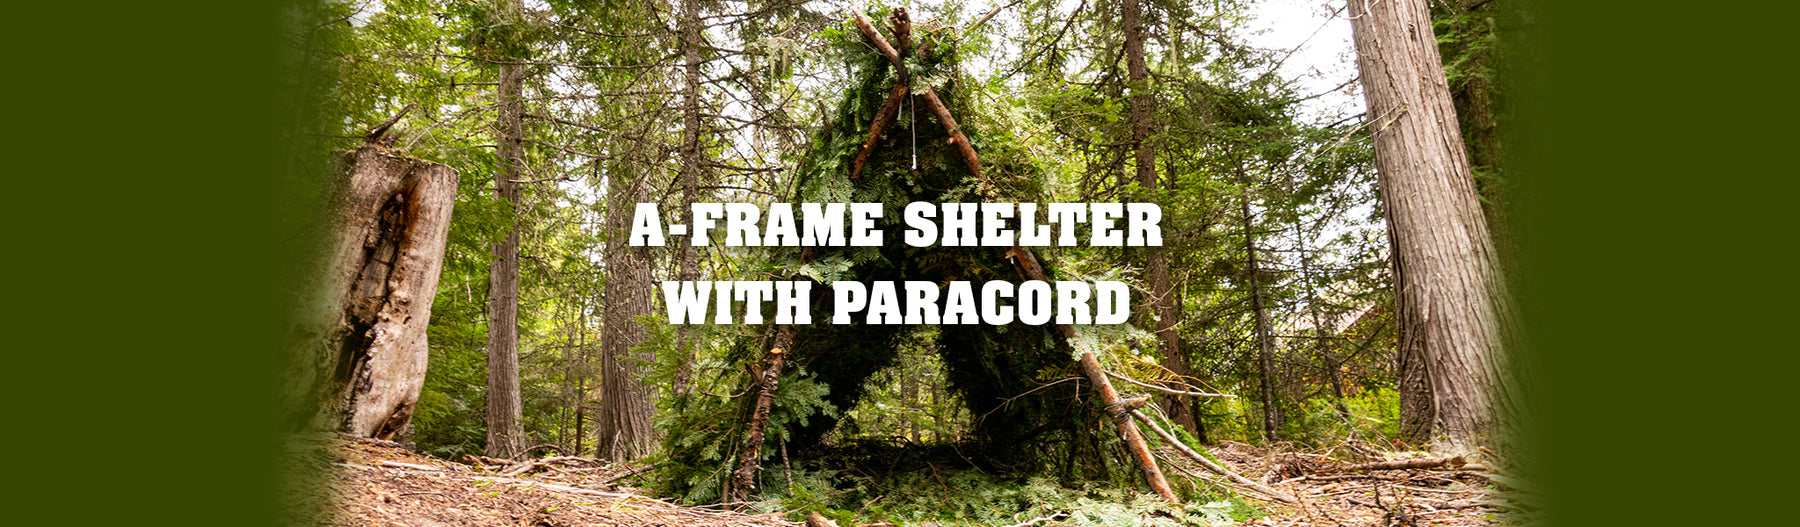 A-Frame Shelter With Paracord